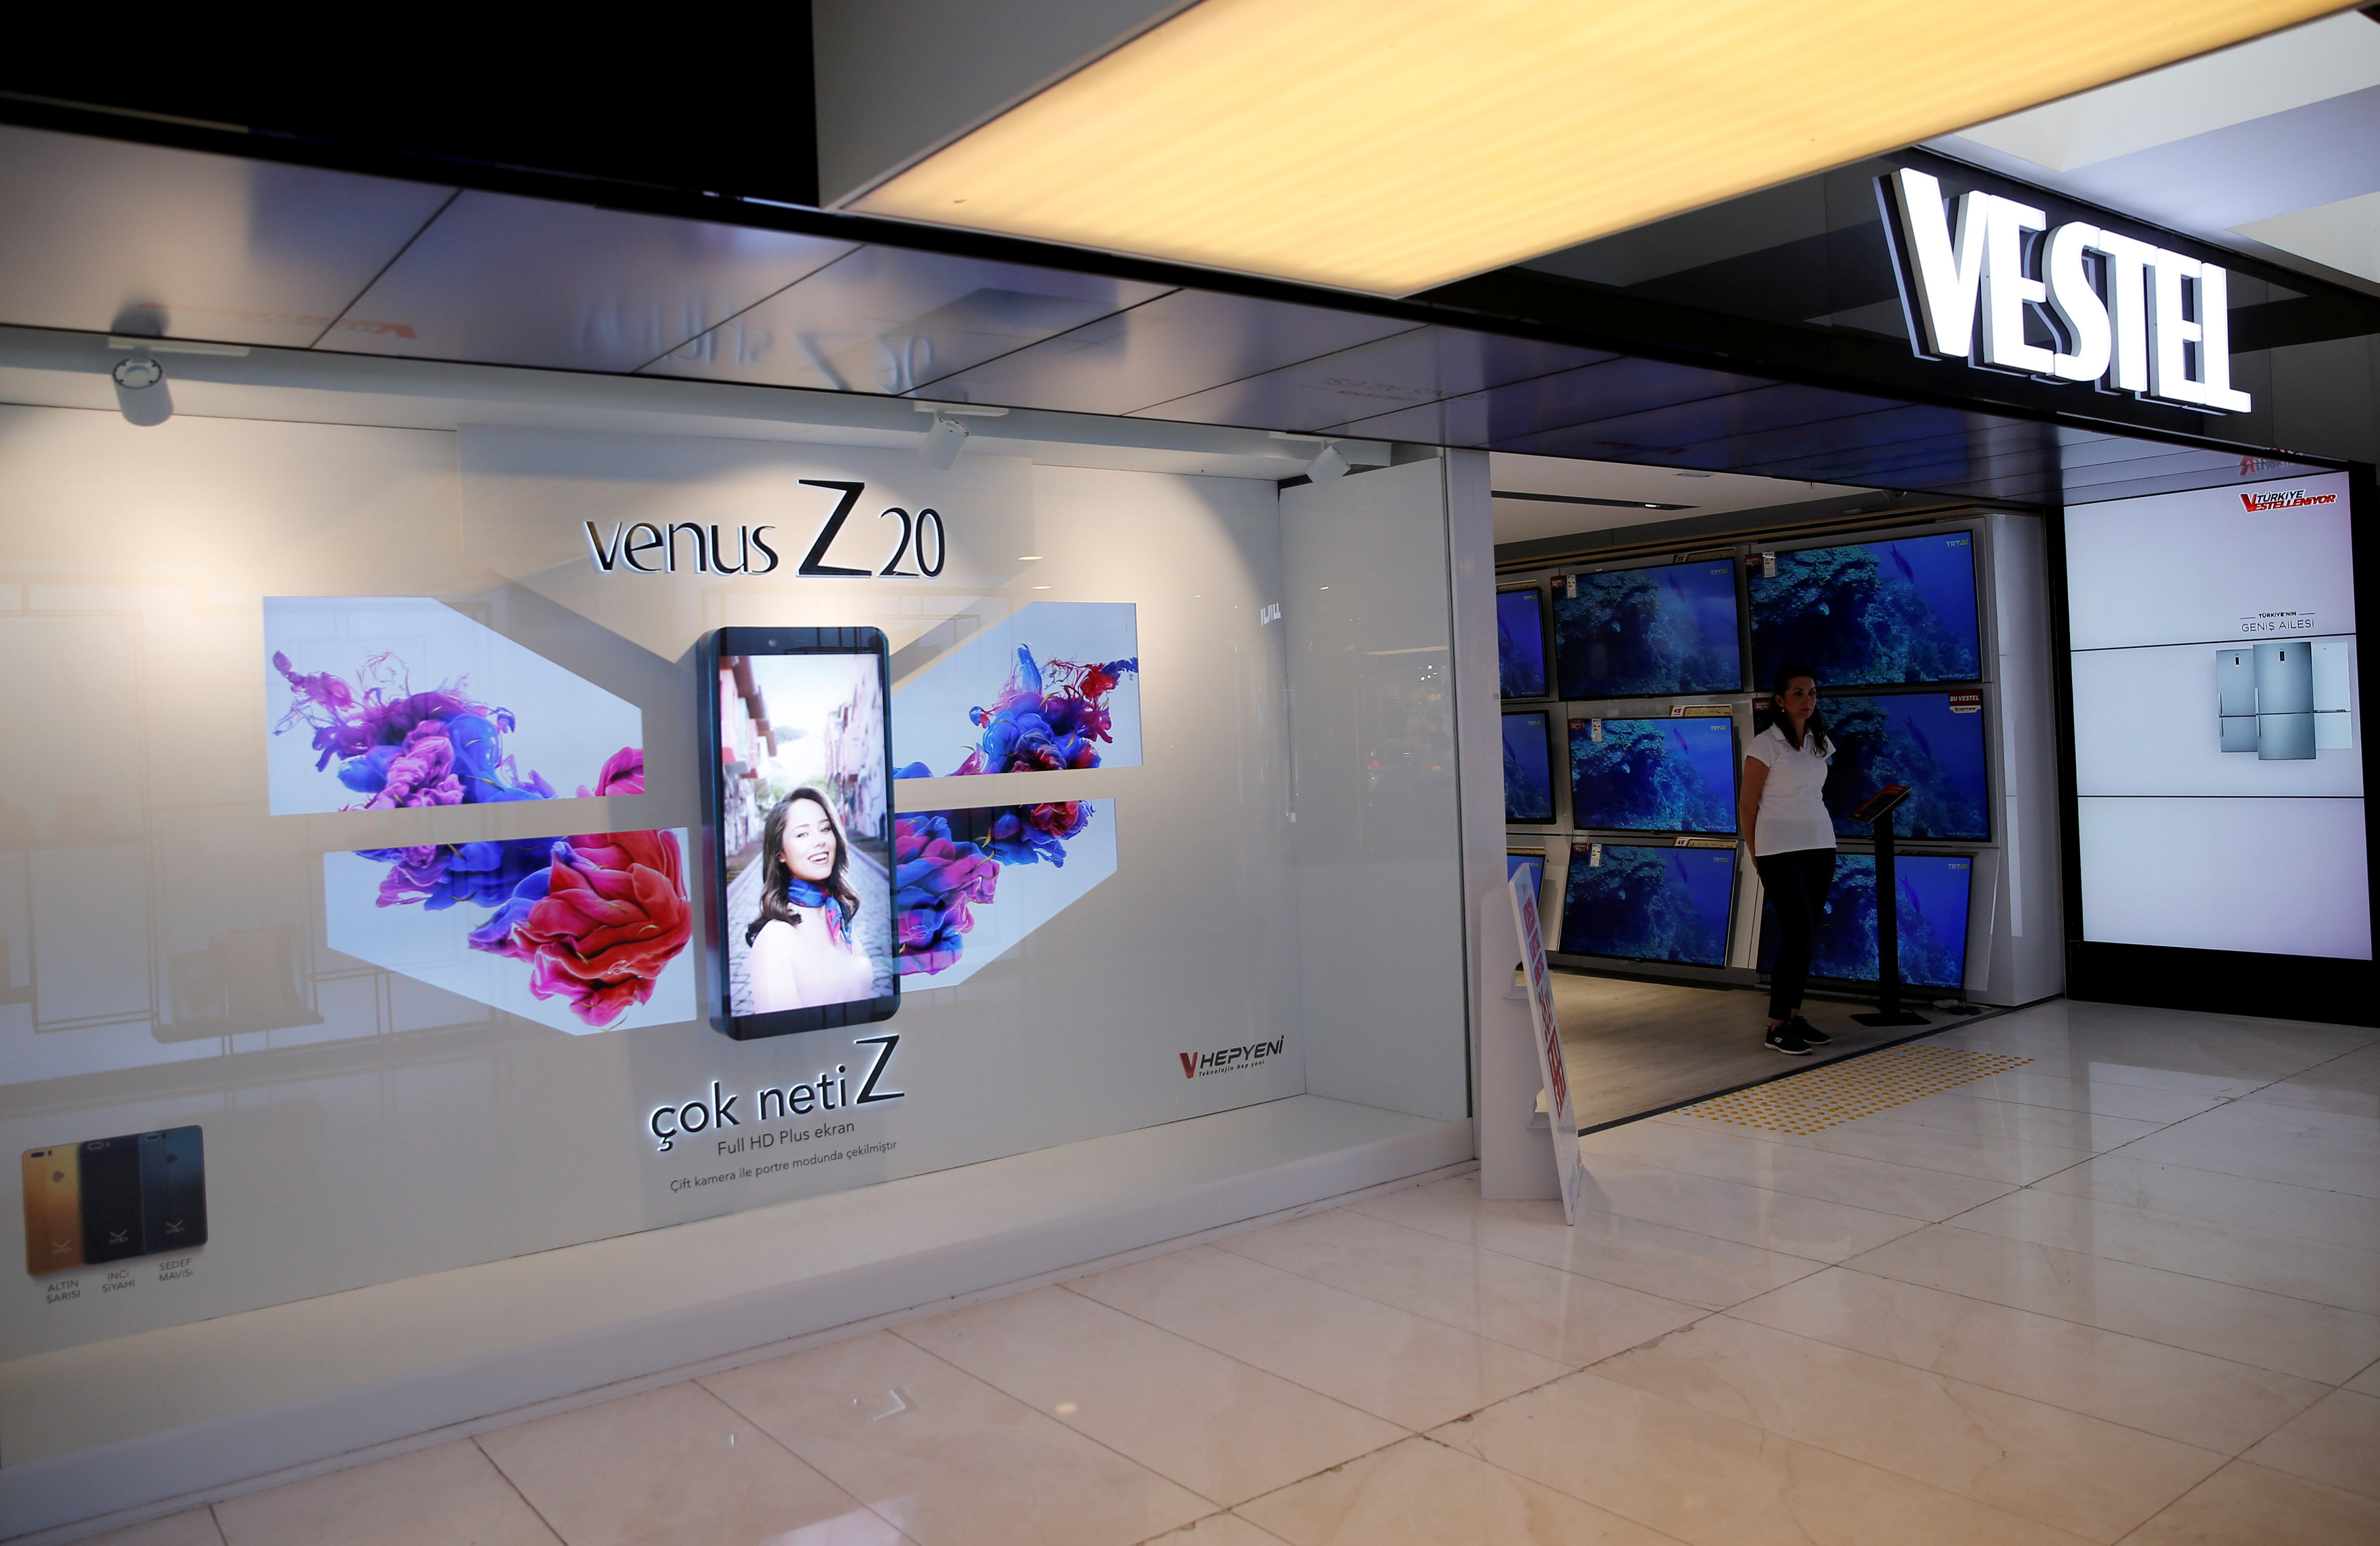 An advertisement for Venus Z20 mobile phone is seen at a Vestel store in Istanbul